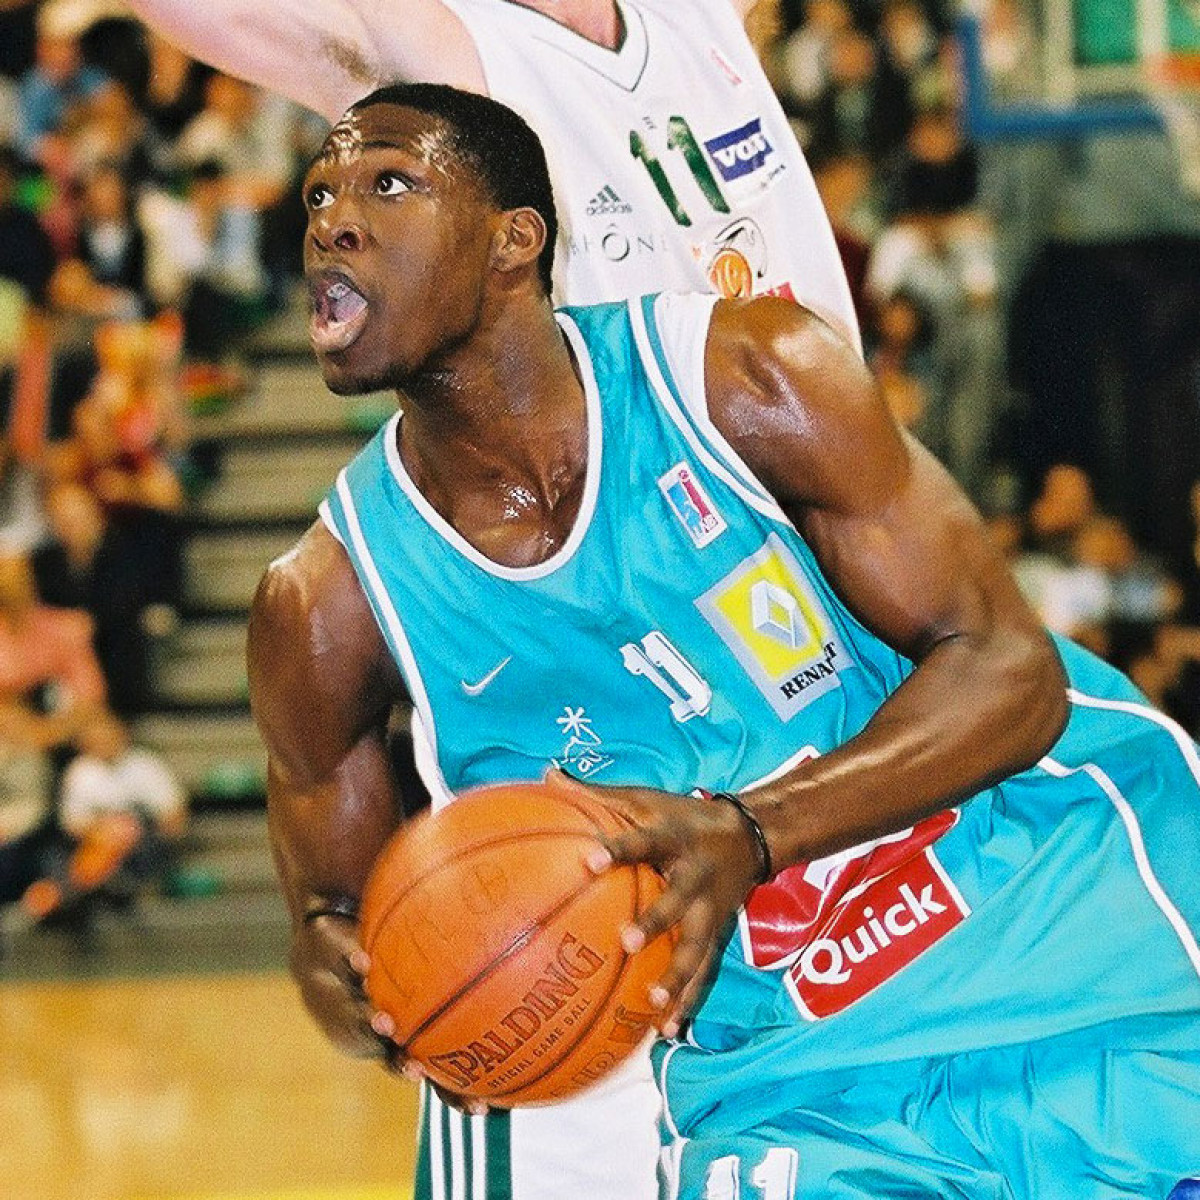 Photo of Florent Pietrus, 2003-2004 season